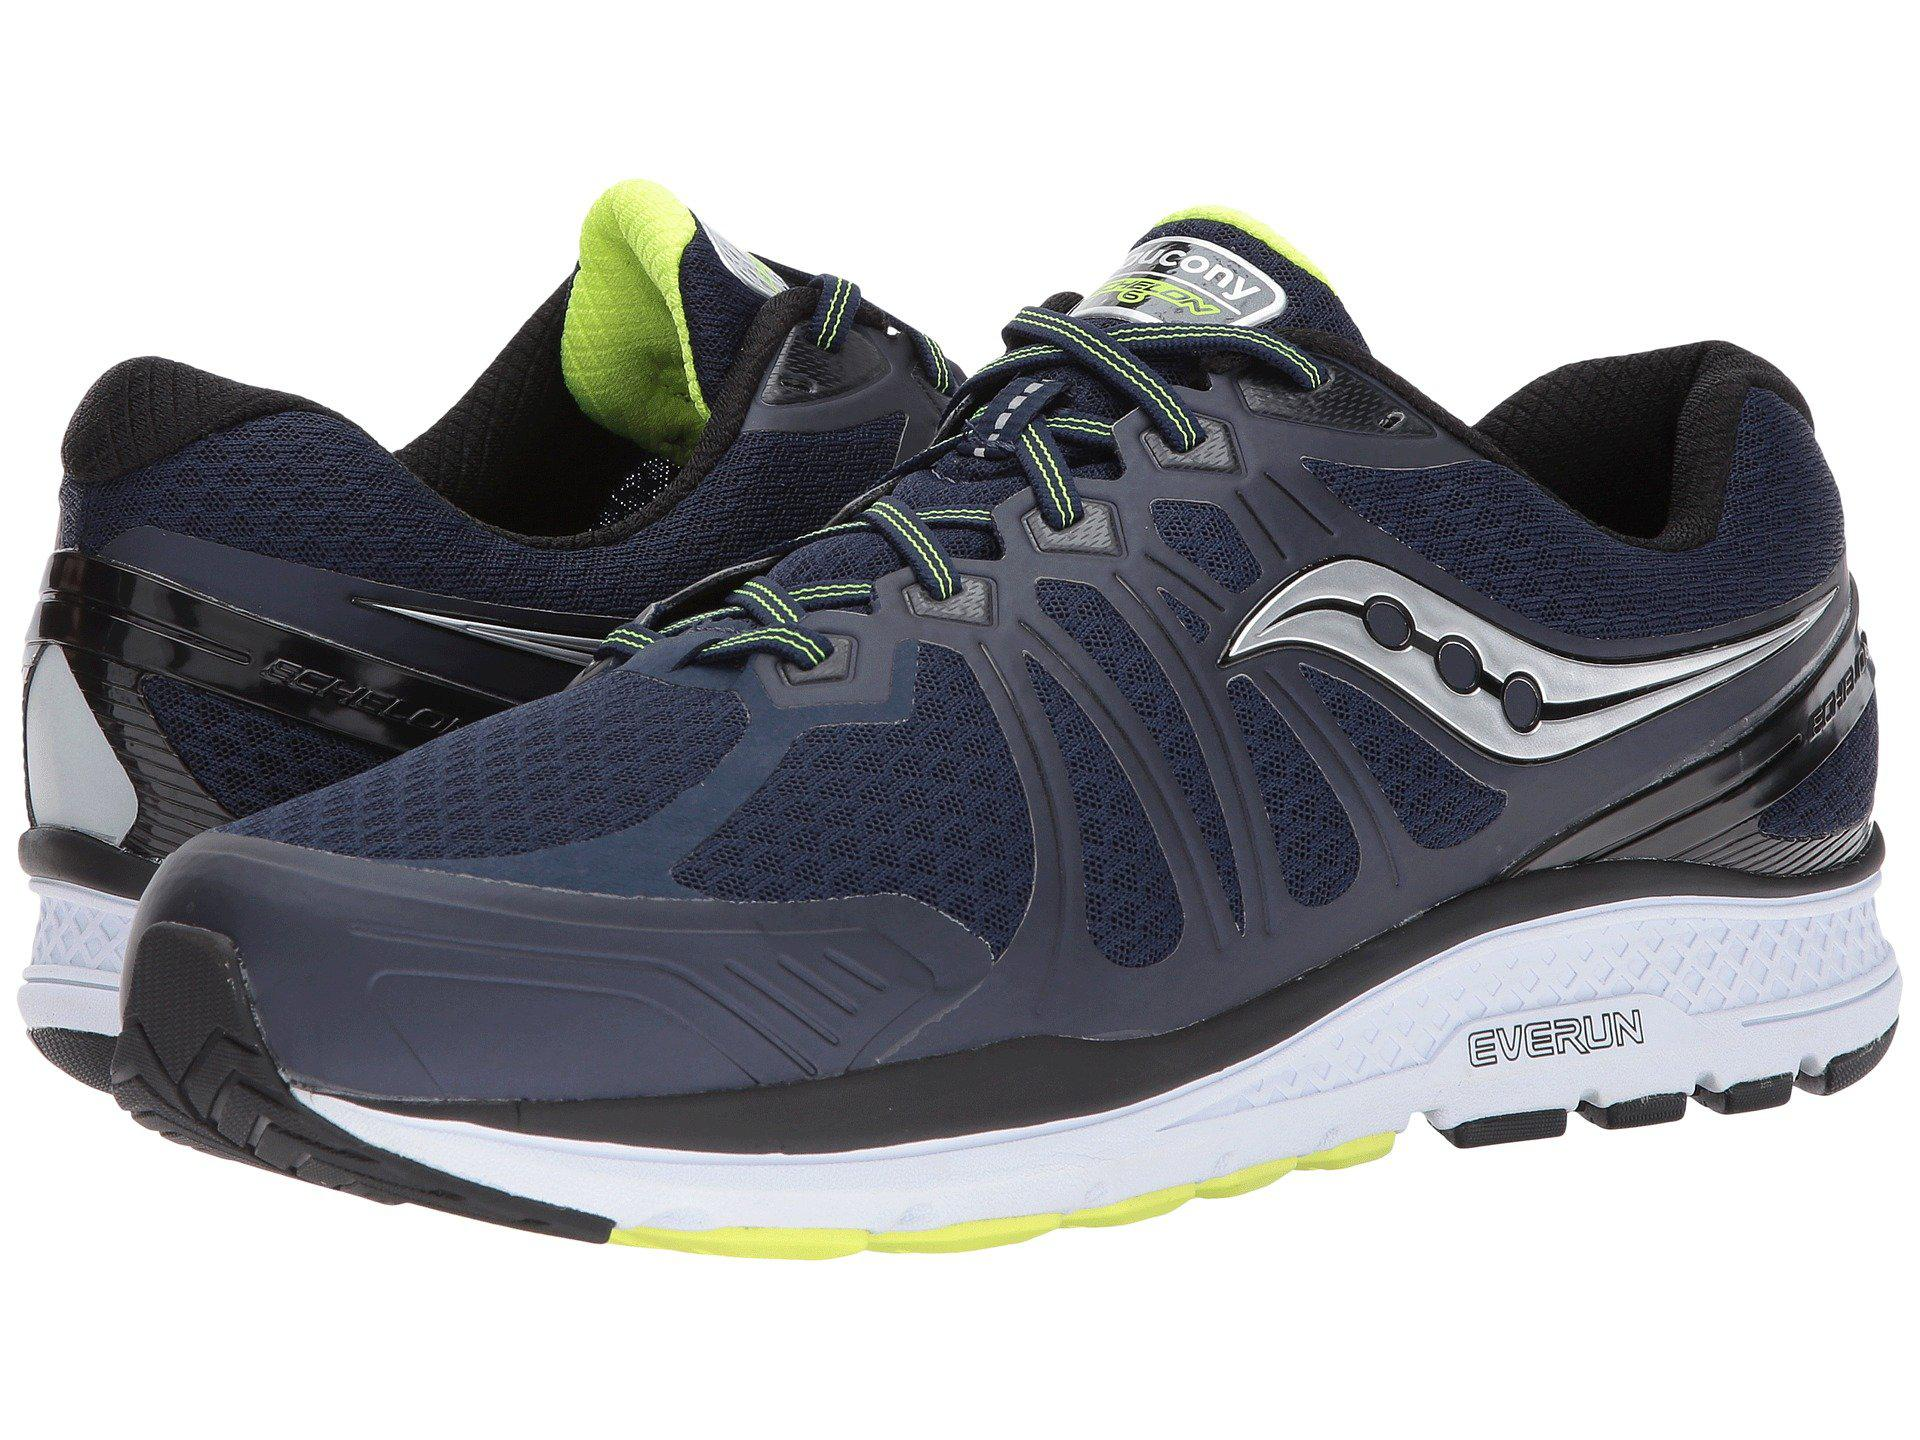 9f1dc0e4f0f9 Lyst - Saucony Echelon 6 (navy citron) Men s Running Shoes in Blue ...